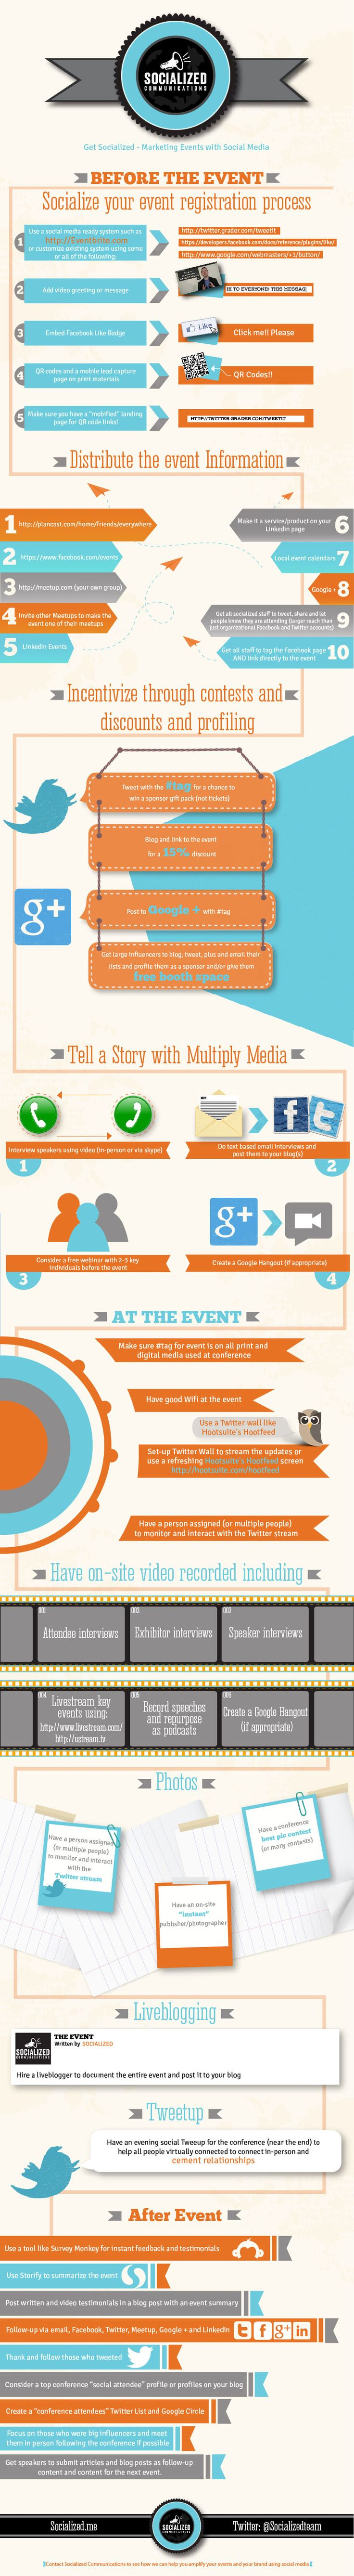 Infographic: Marketing and Amplifying Events with Social Media [INFOGRAPHIC]